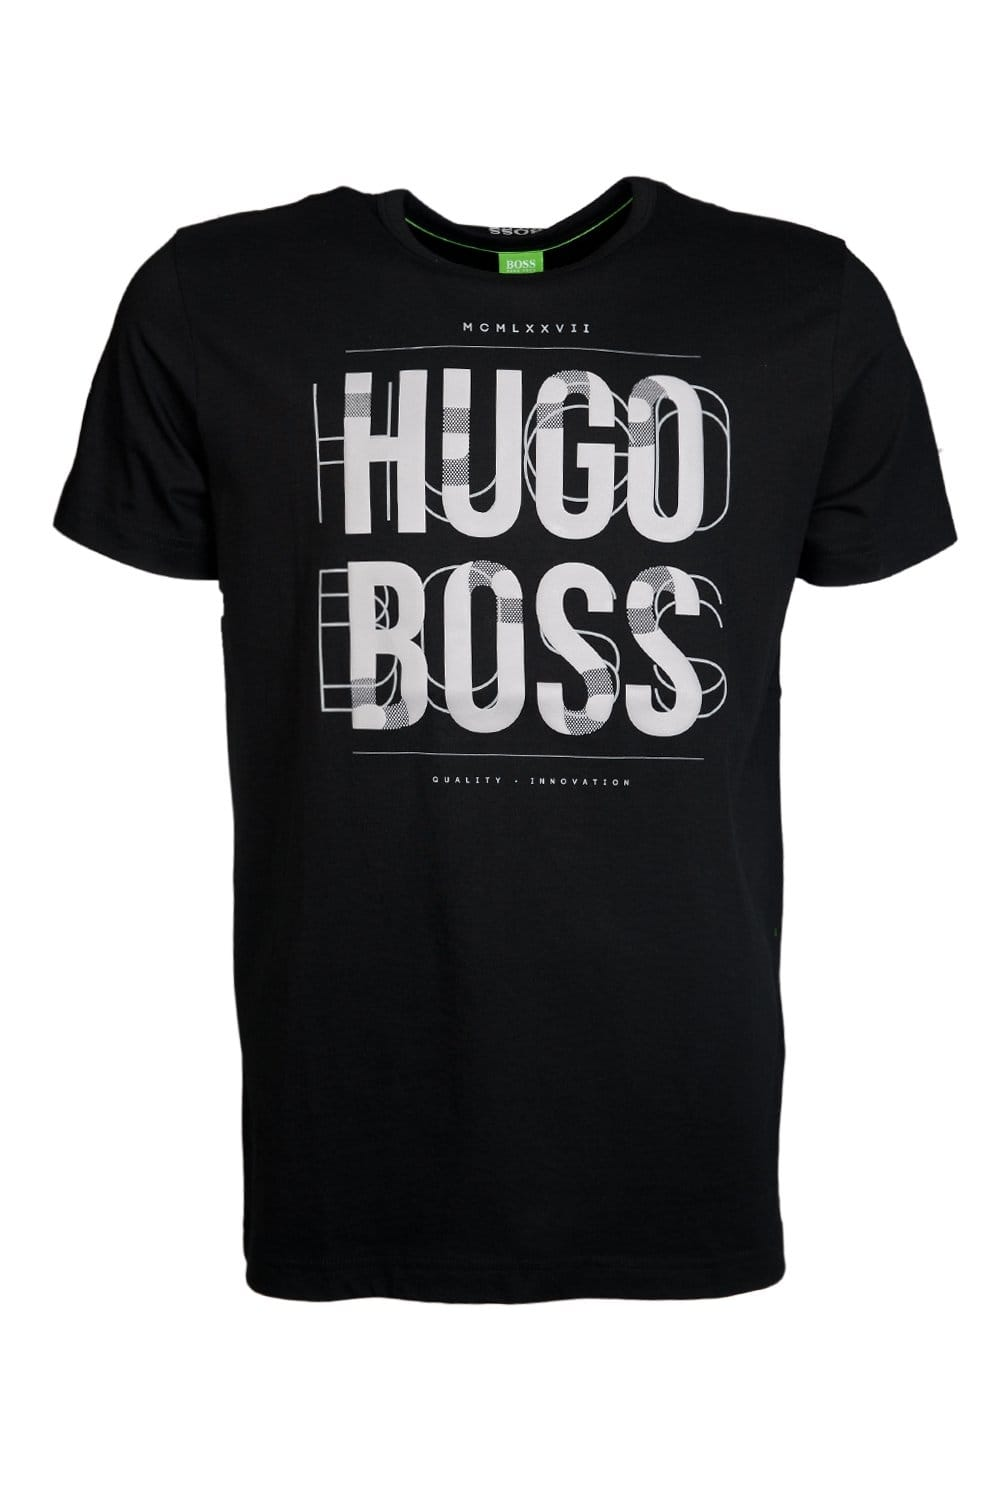 designer t shirts hugo green designer t shirt in black and navy blue 30347